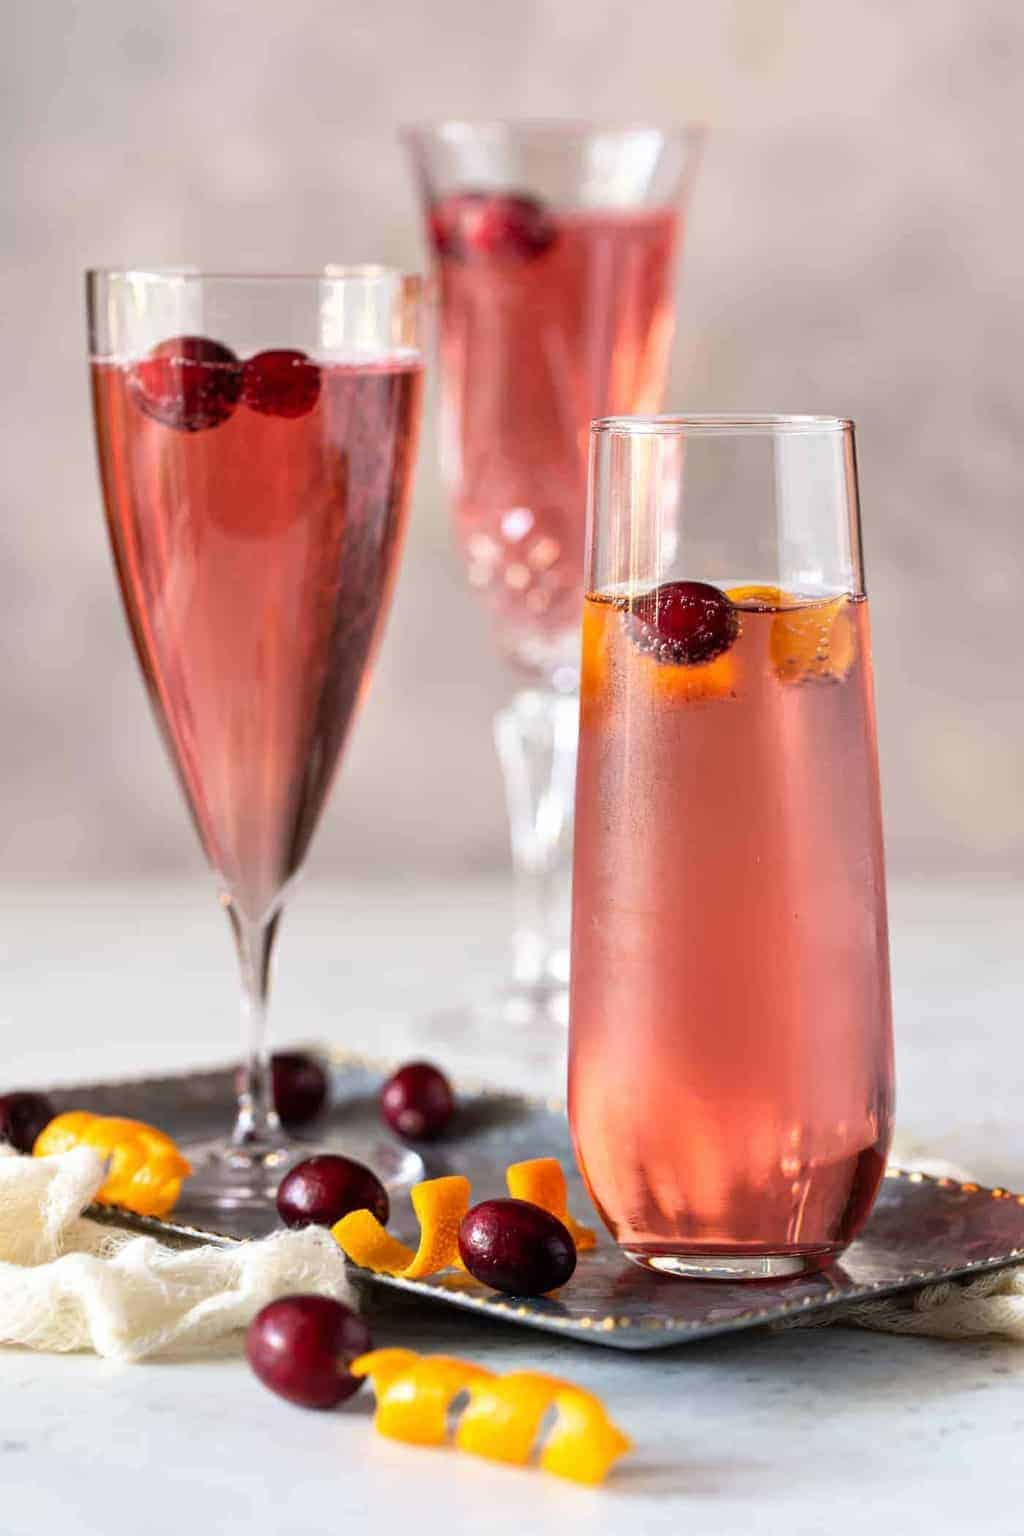 Cranberry Orange Prosecco Cocktails on a silcer tray with fresh cranberries and orange peel for garnish.